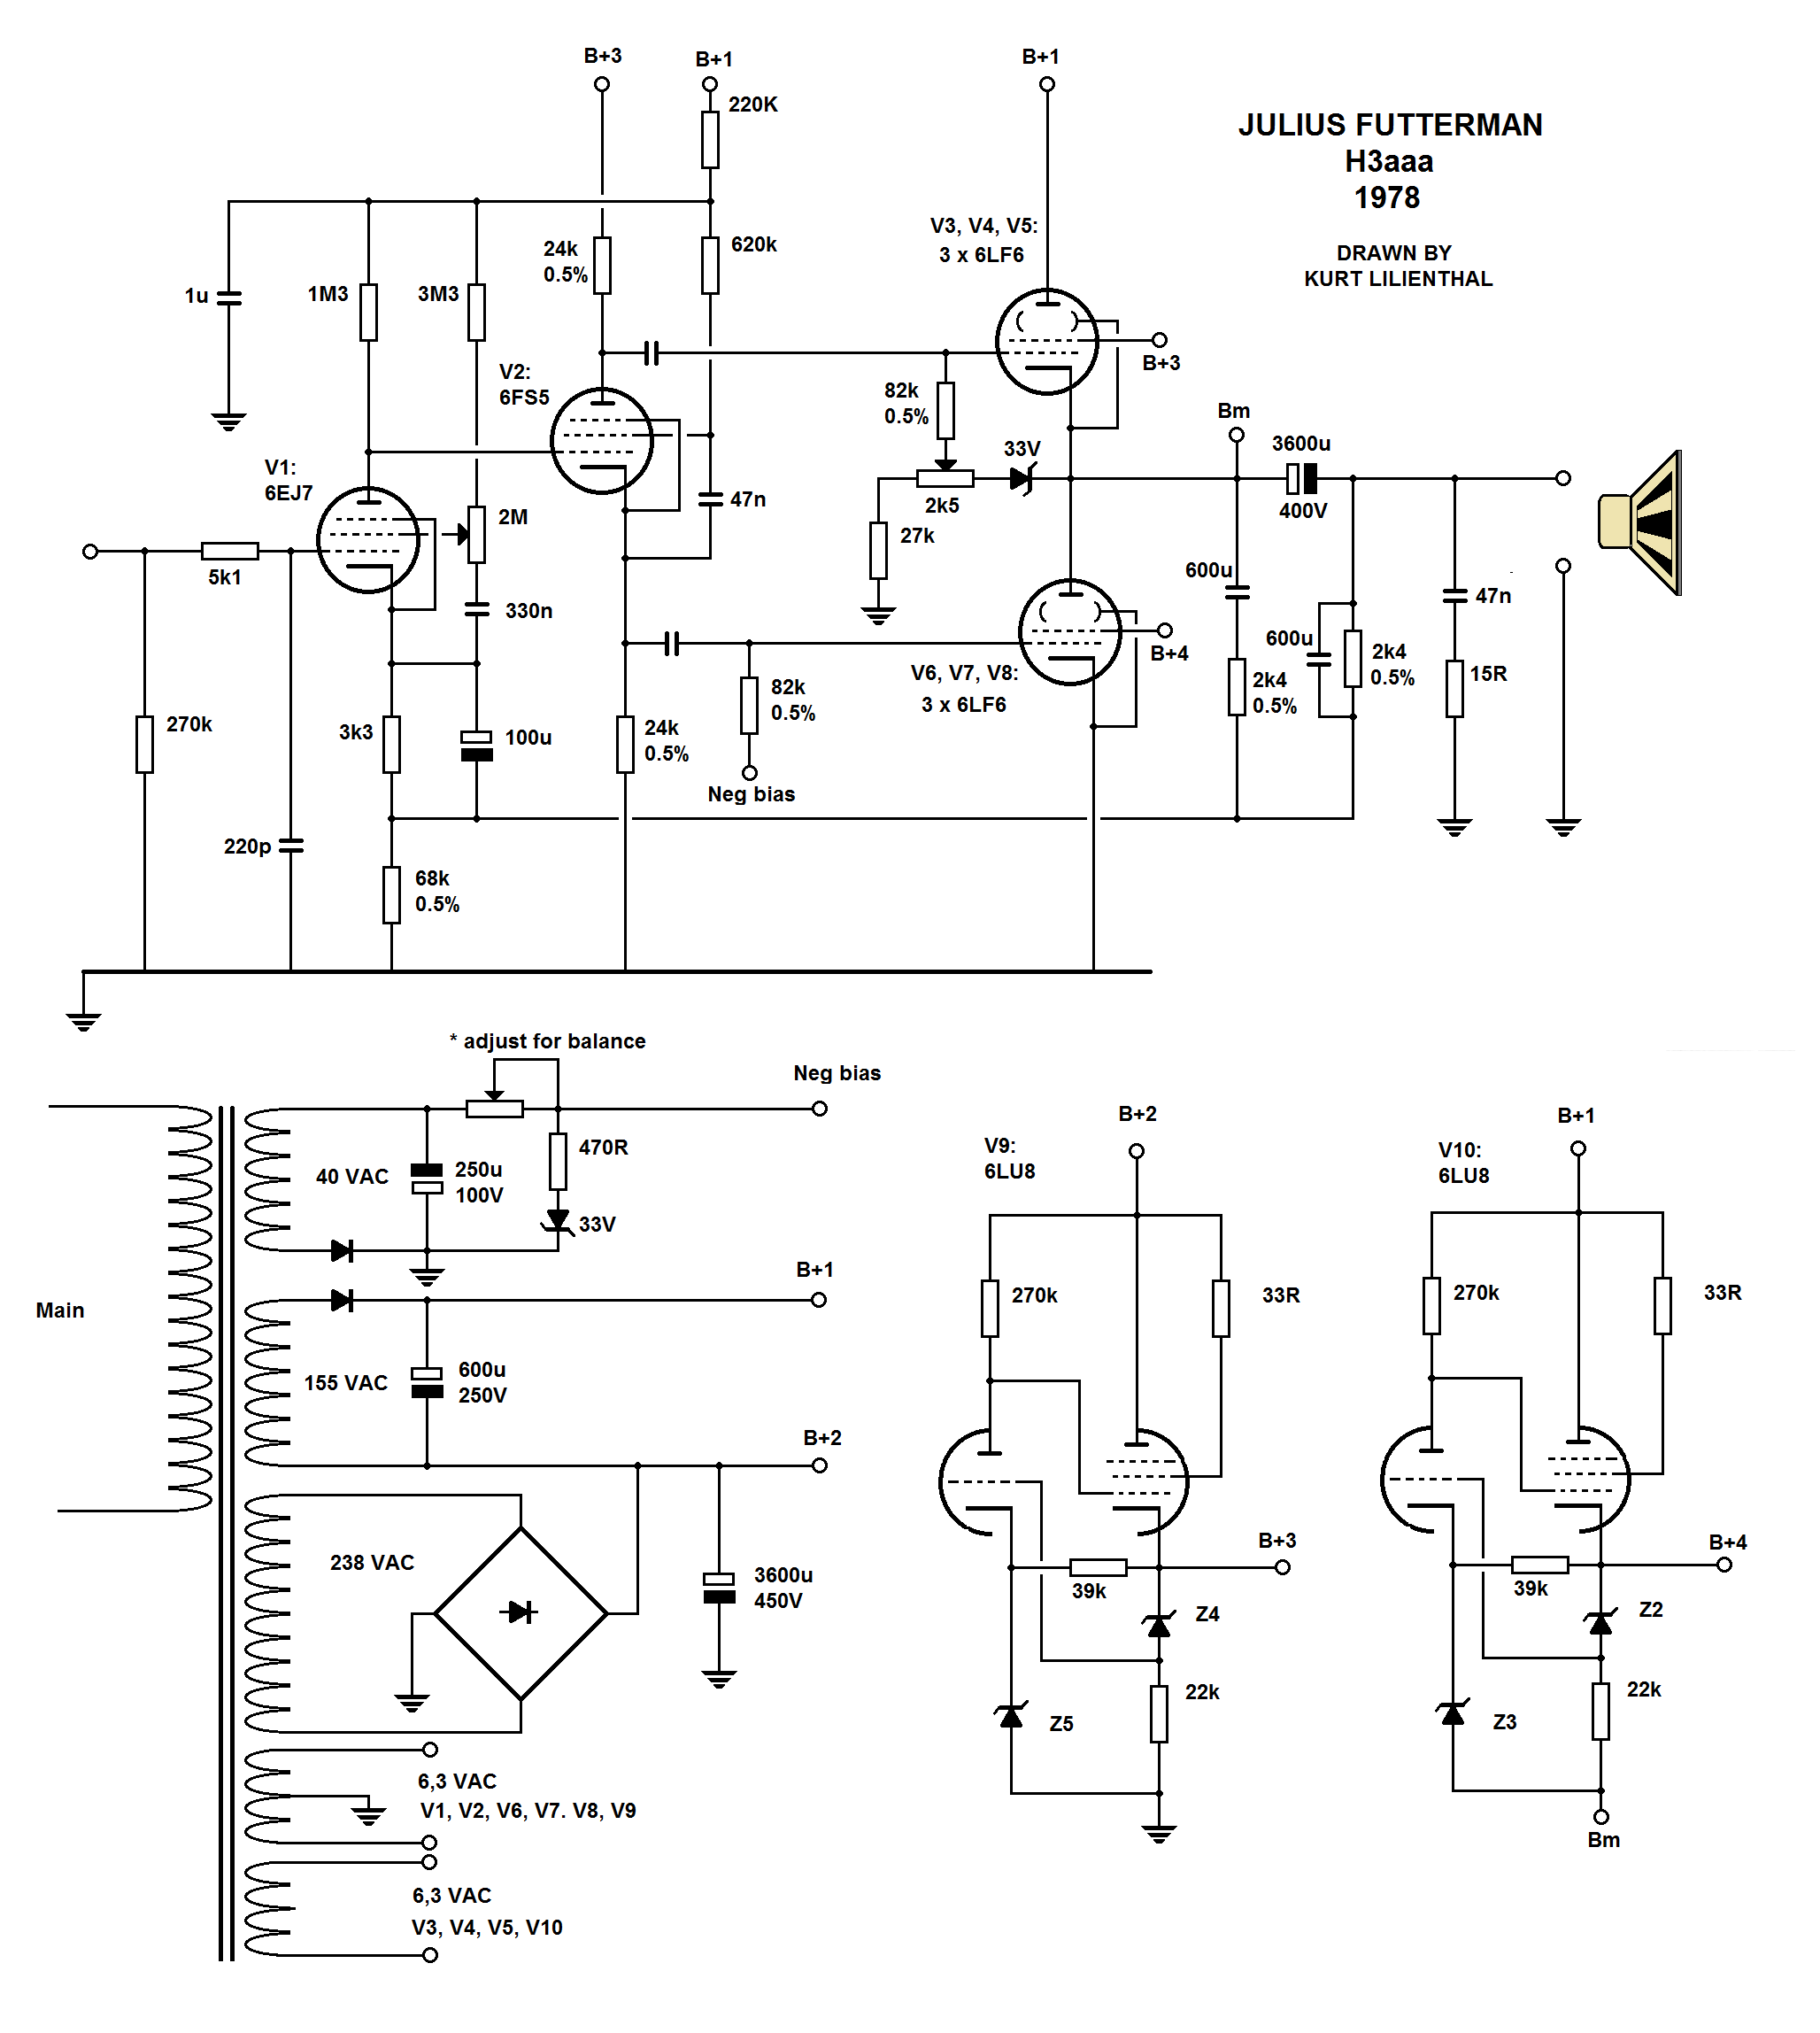 100 Amplifiers Part 3 1955 59 Lilienthal Engineering Class C Amplifier Circuit Diagram If You Happen To Have Some Pictures Of The In This Compendia Please Do Not Hesitate Contact Me Will Be Accredited Your Name